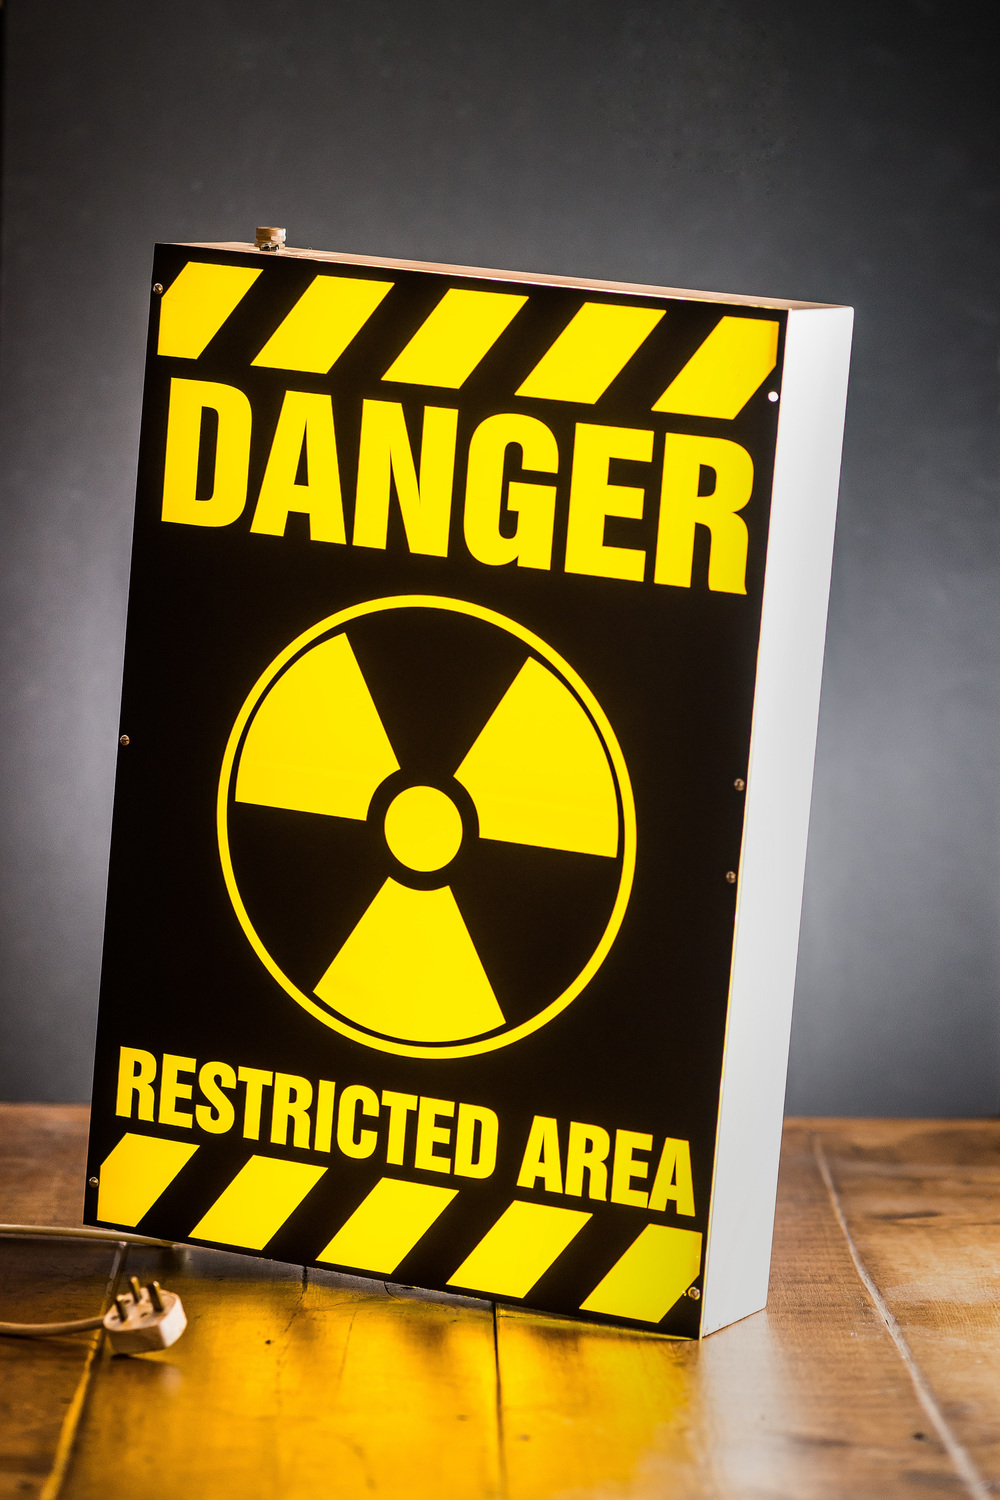 Danger Restricted Area Light Box